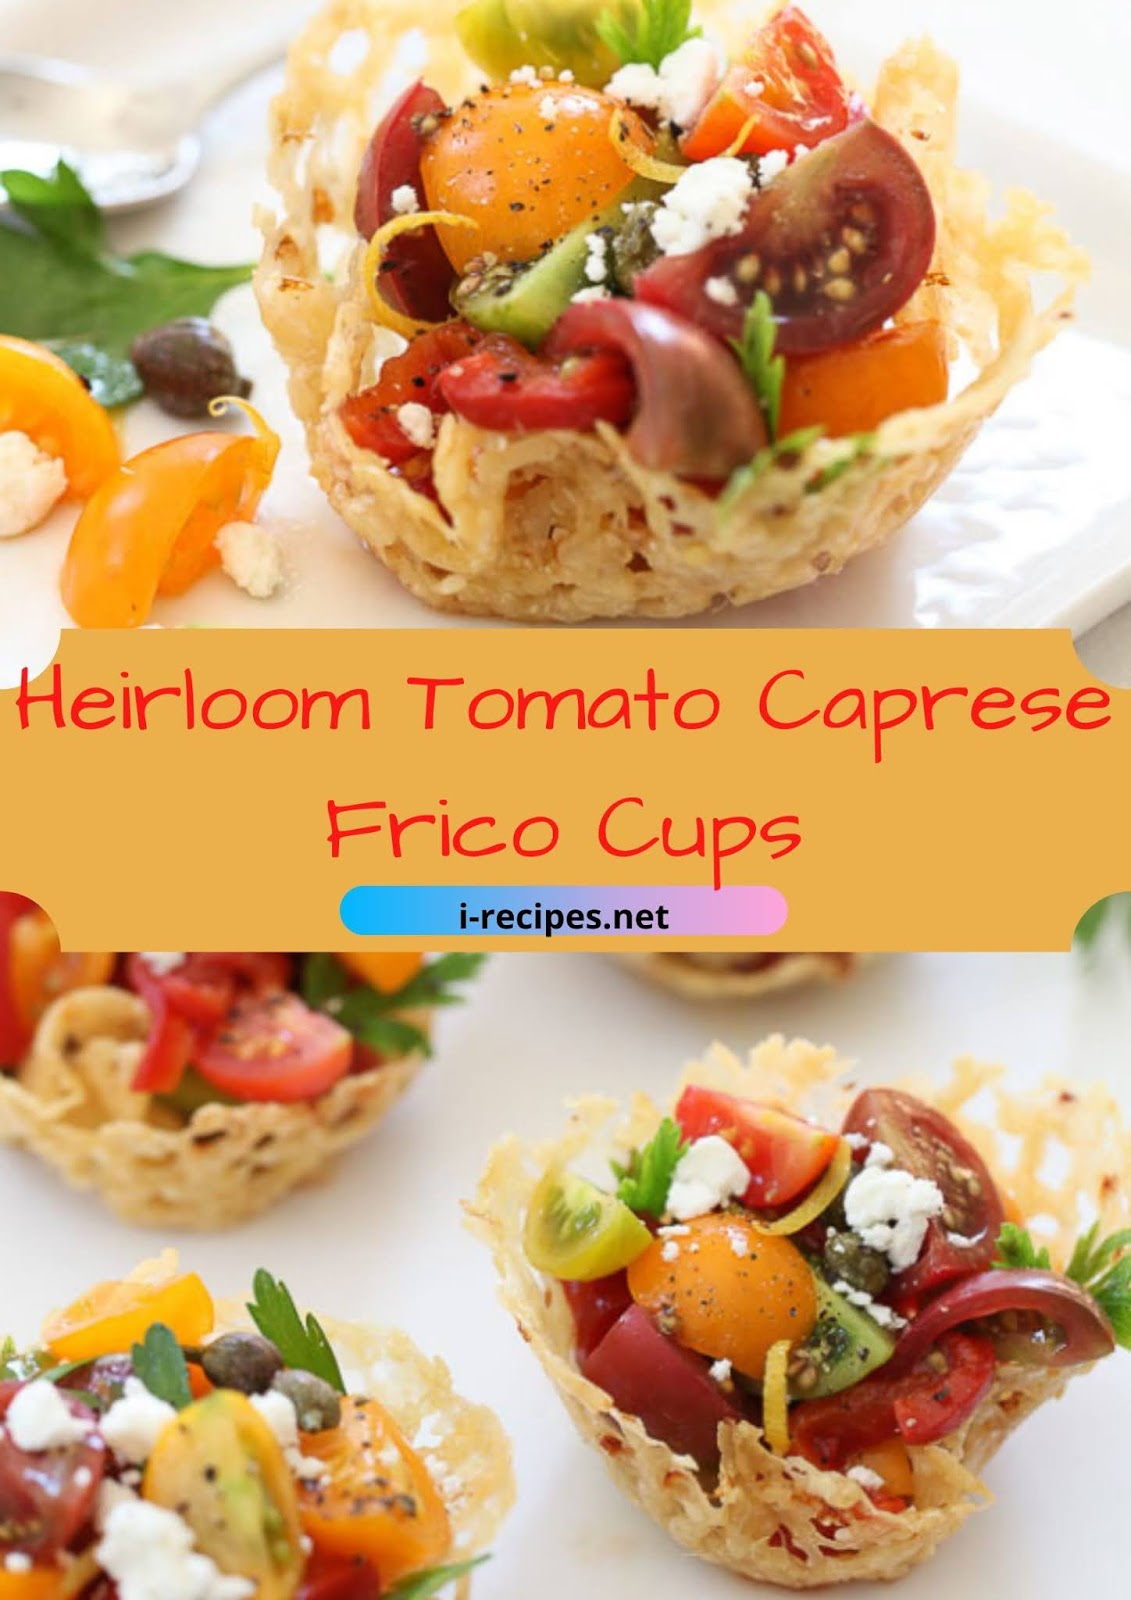 Heirloom Tomato Caprese Frico Cups